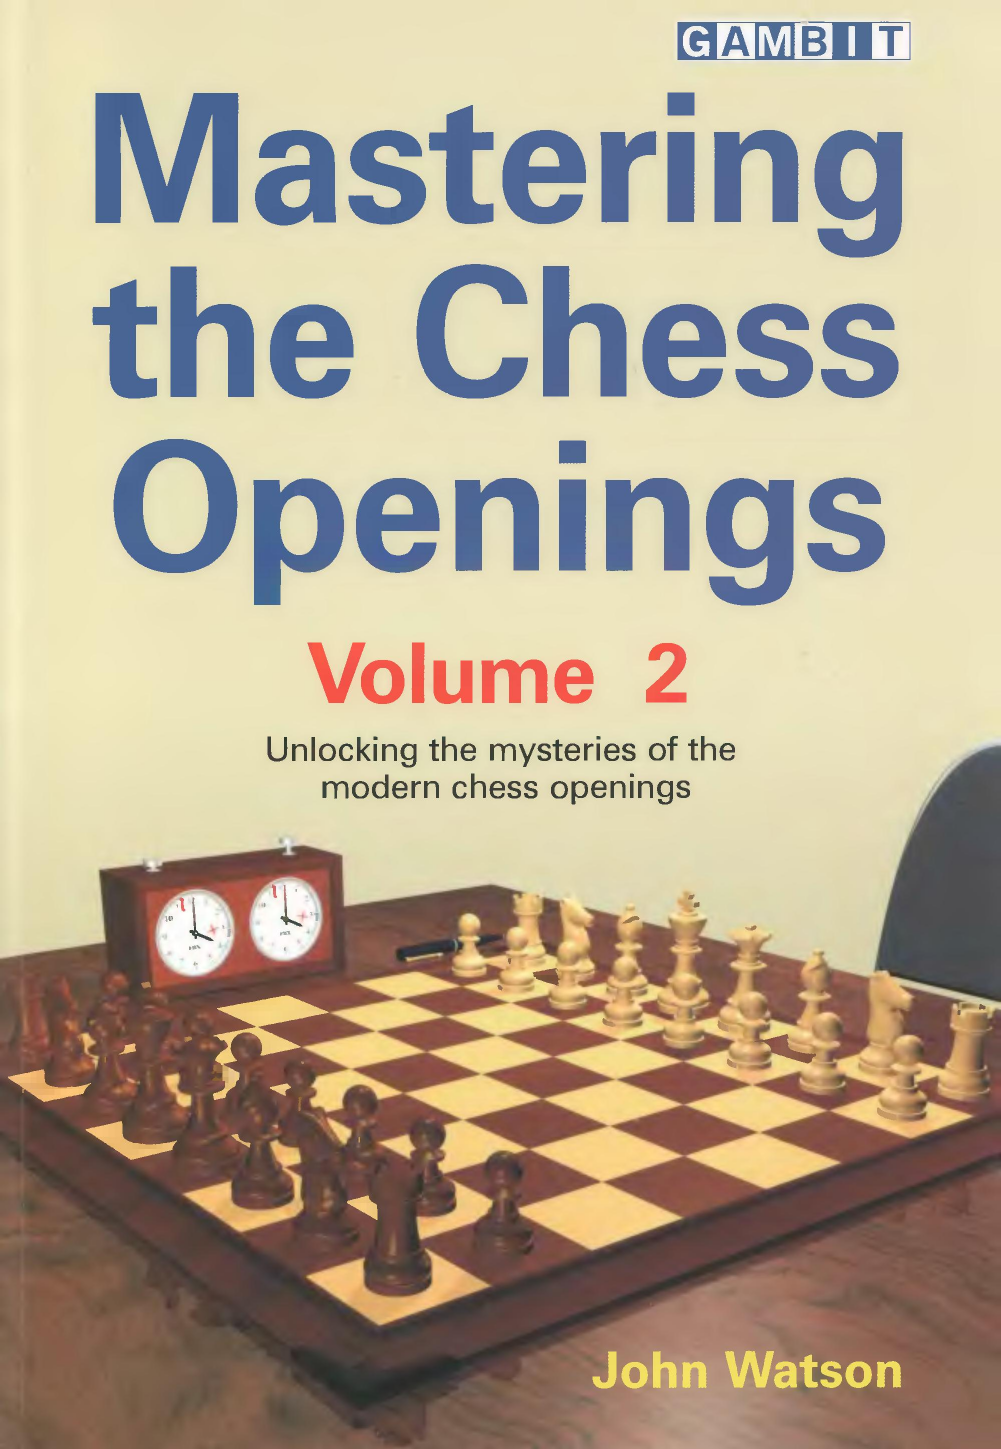 Mastering the Chess Openings Vol 2